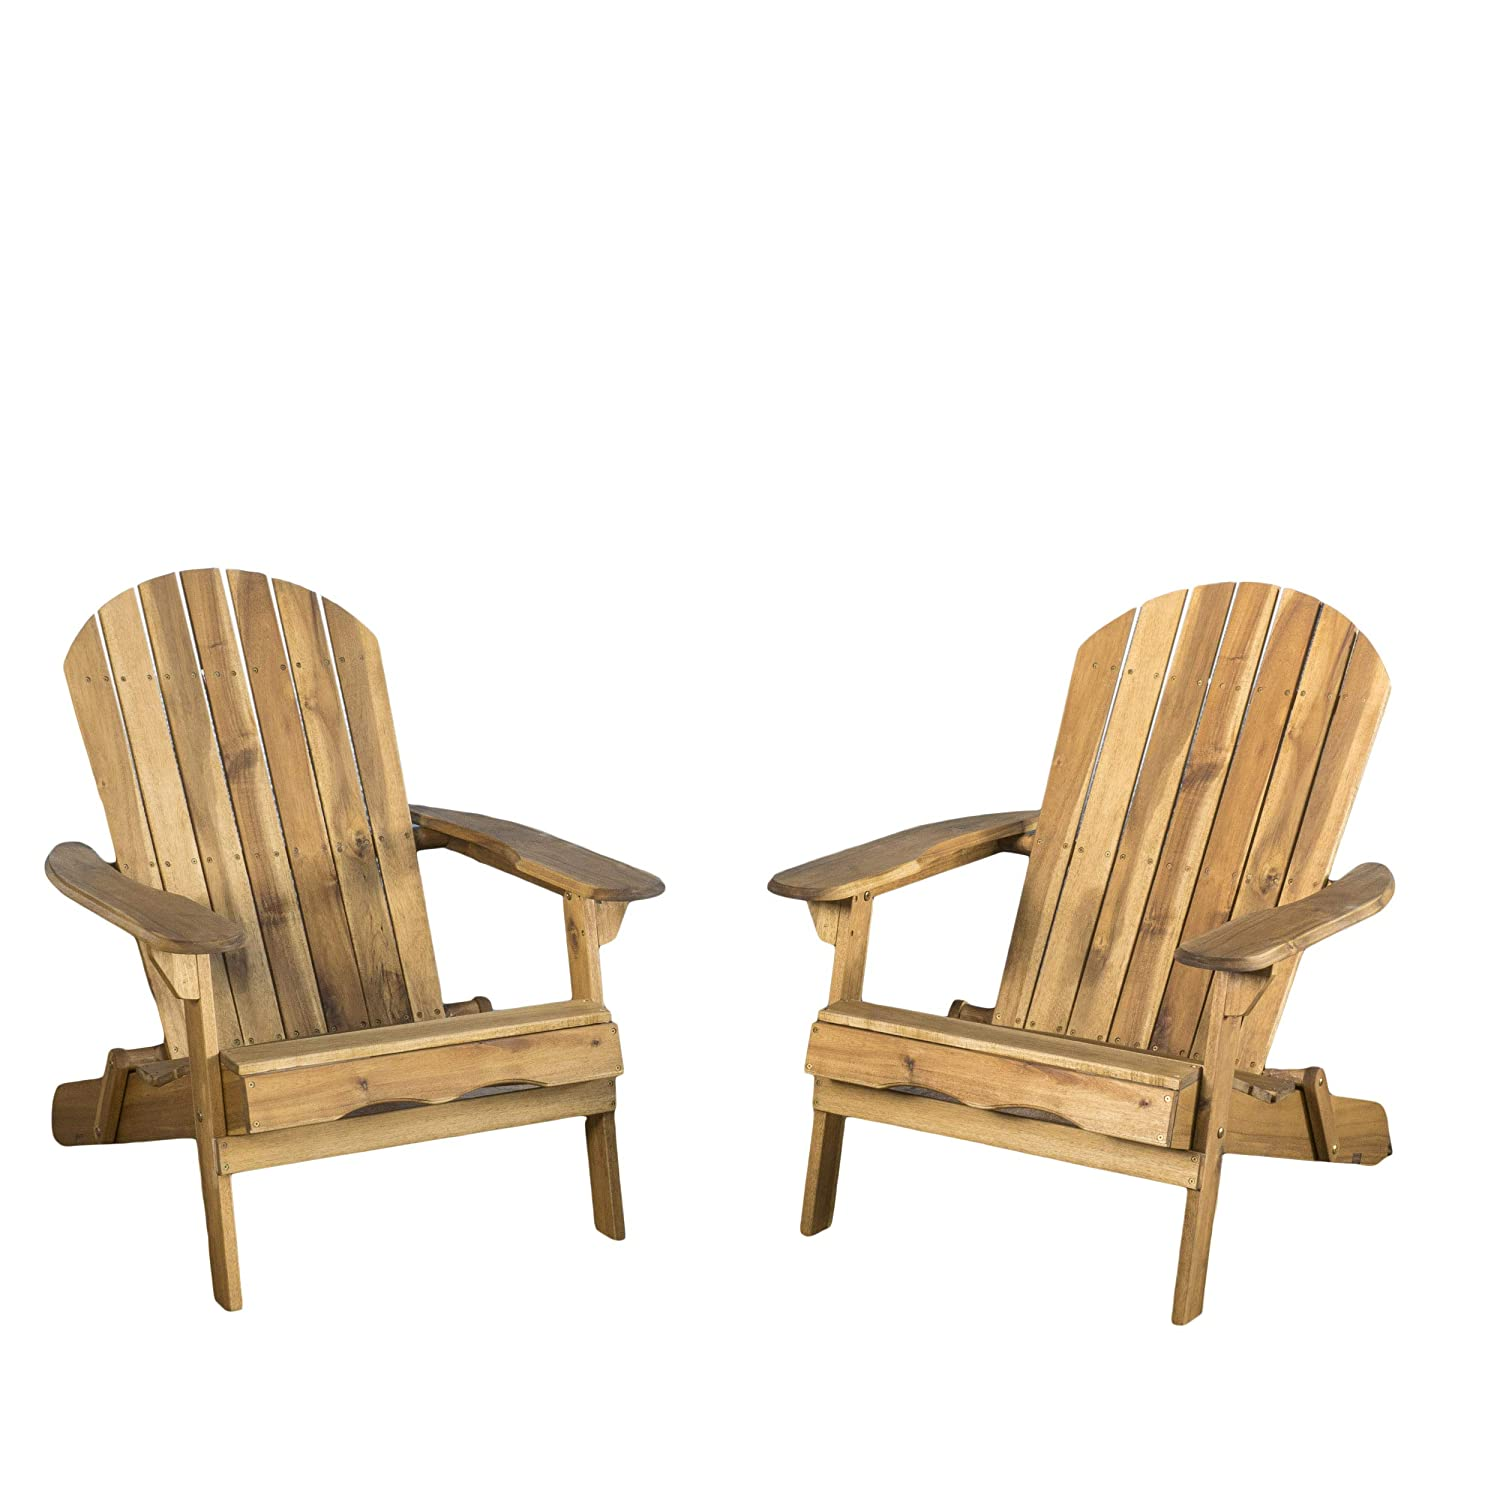 Christopher Knight Home 296698 Milan Brown Outdoor Folding Adirondack Chair Set of 2 , Set of Two, Natural Wood